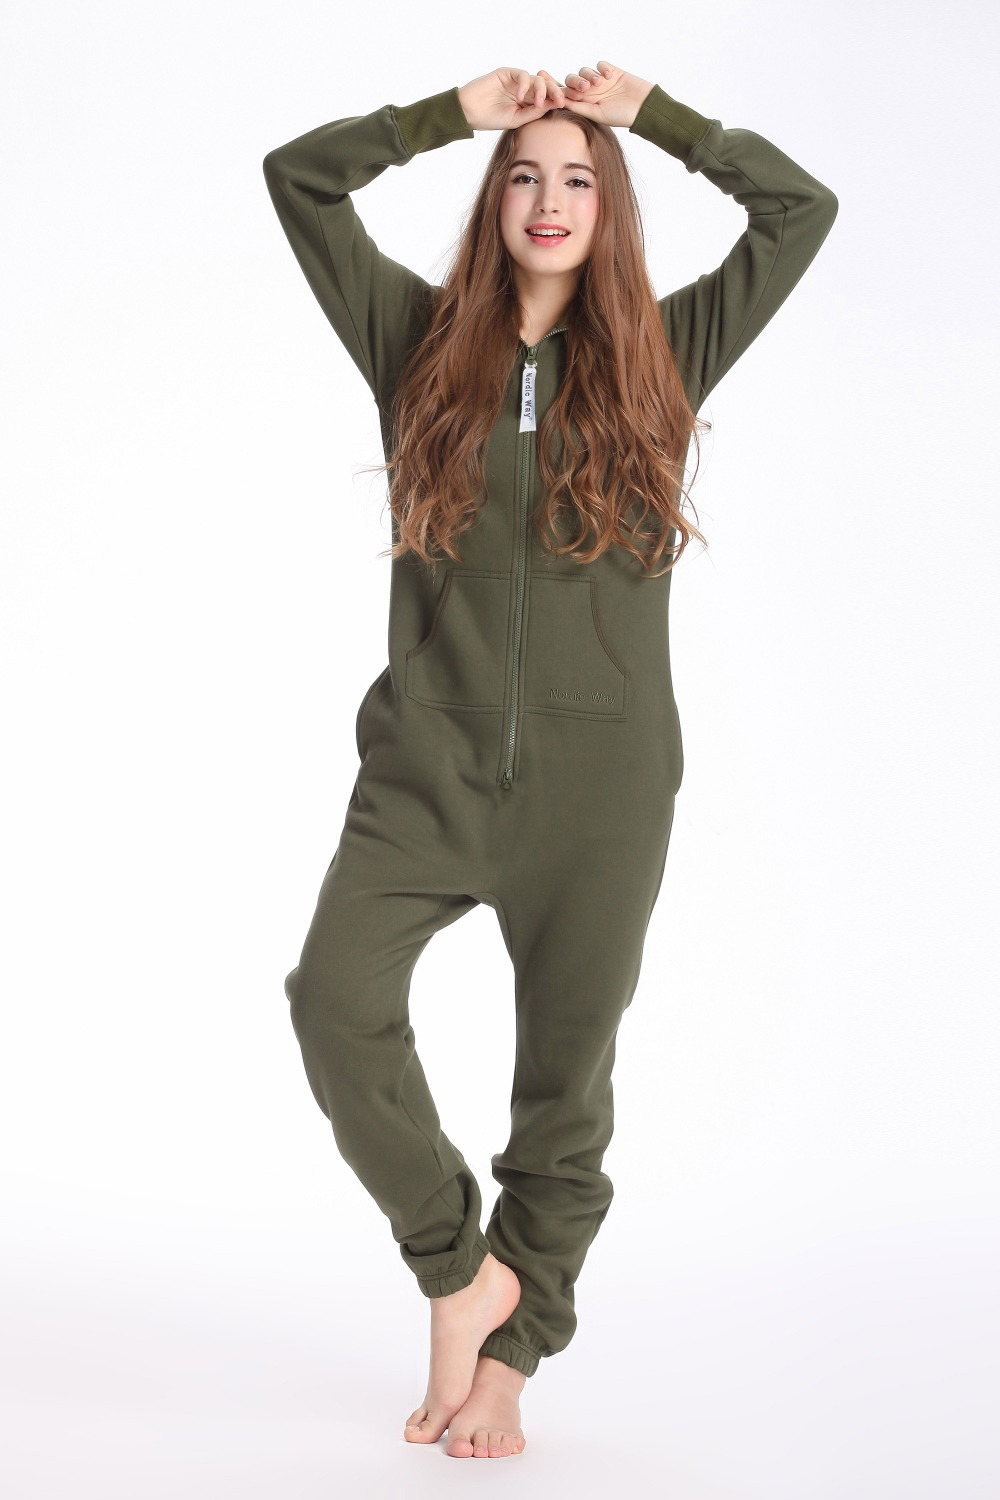 Nordic Way Army Green One Piece Jumpsuit Hoodies Fleece Zip Women Men Romper